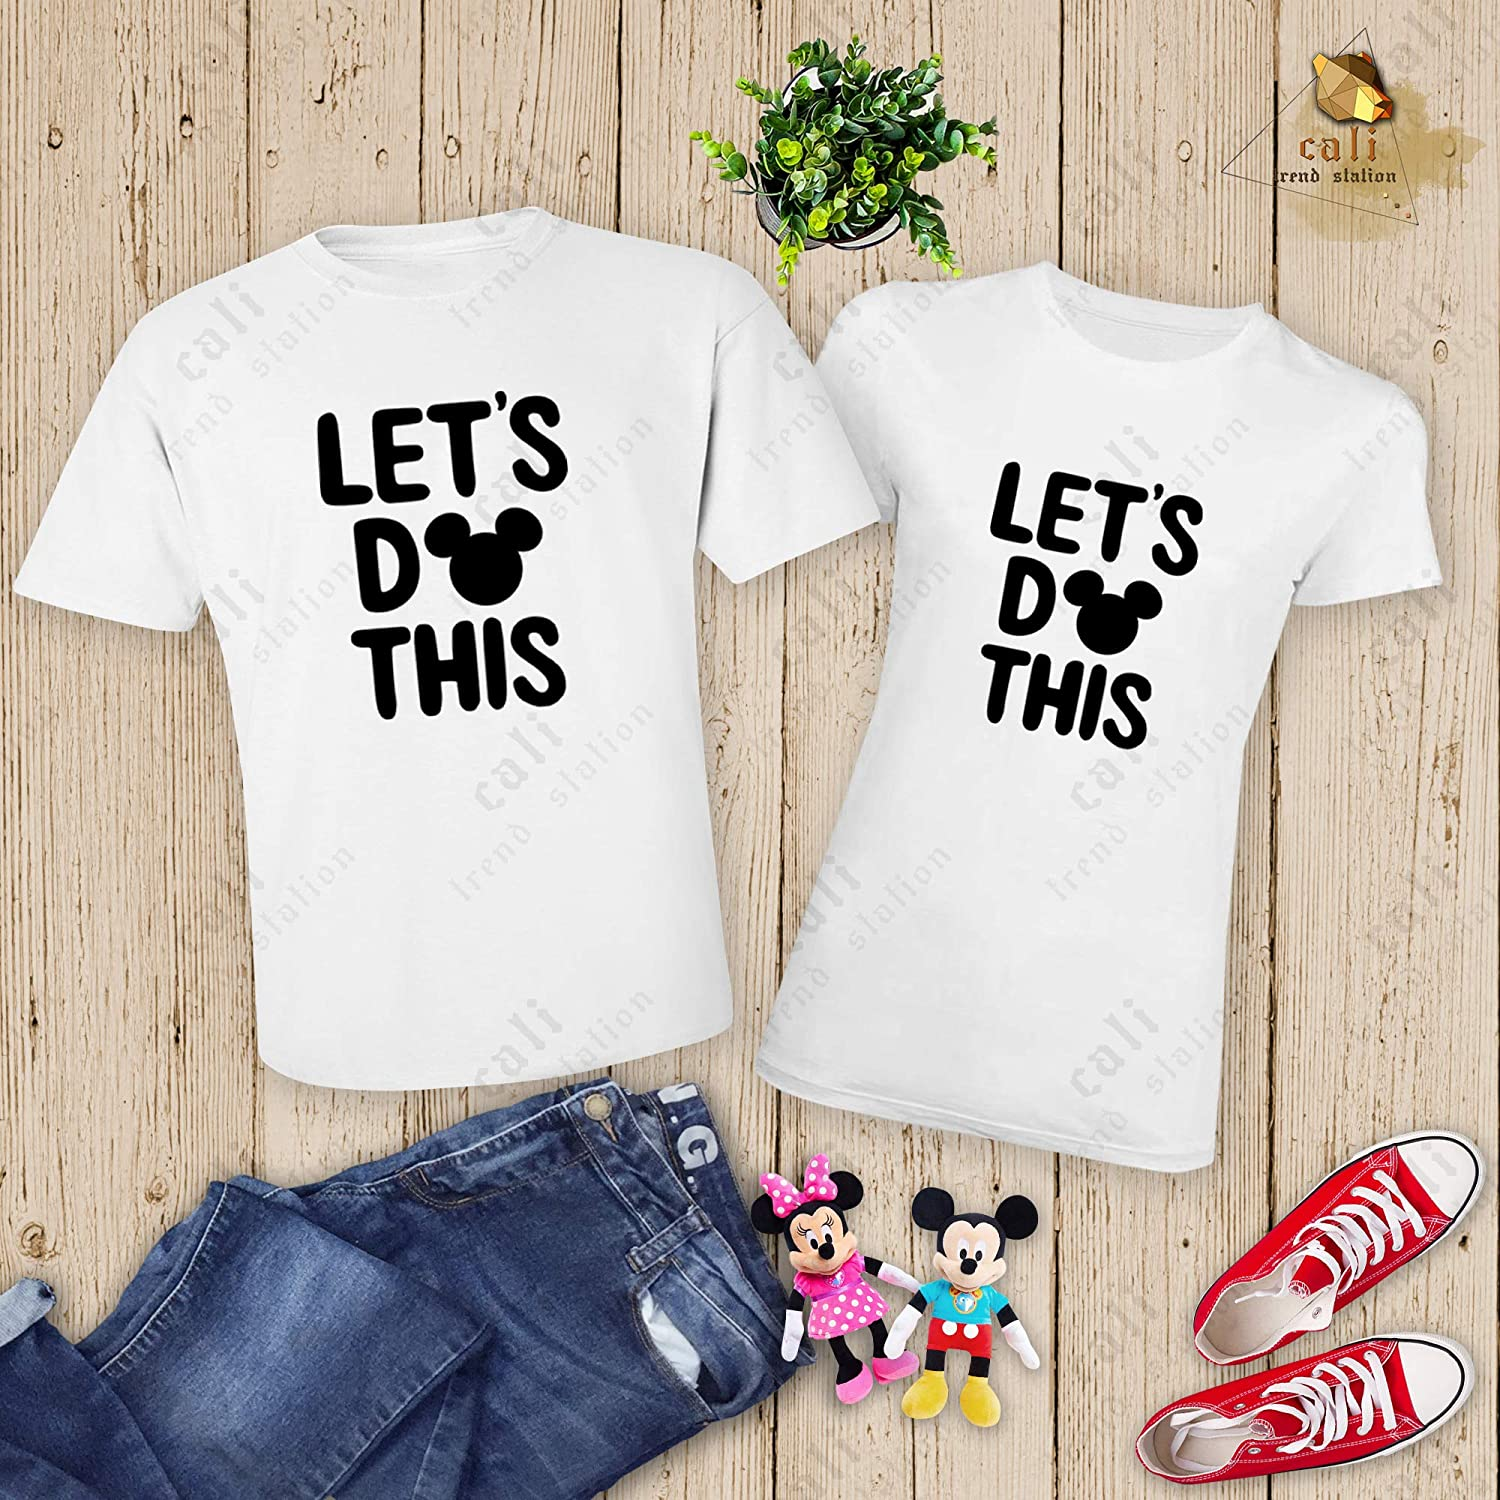 Cali Trend Station Family Vacation 2019 Mickey Minnie Mouse Matching T Shirts